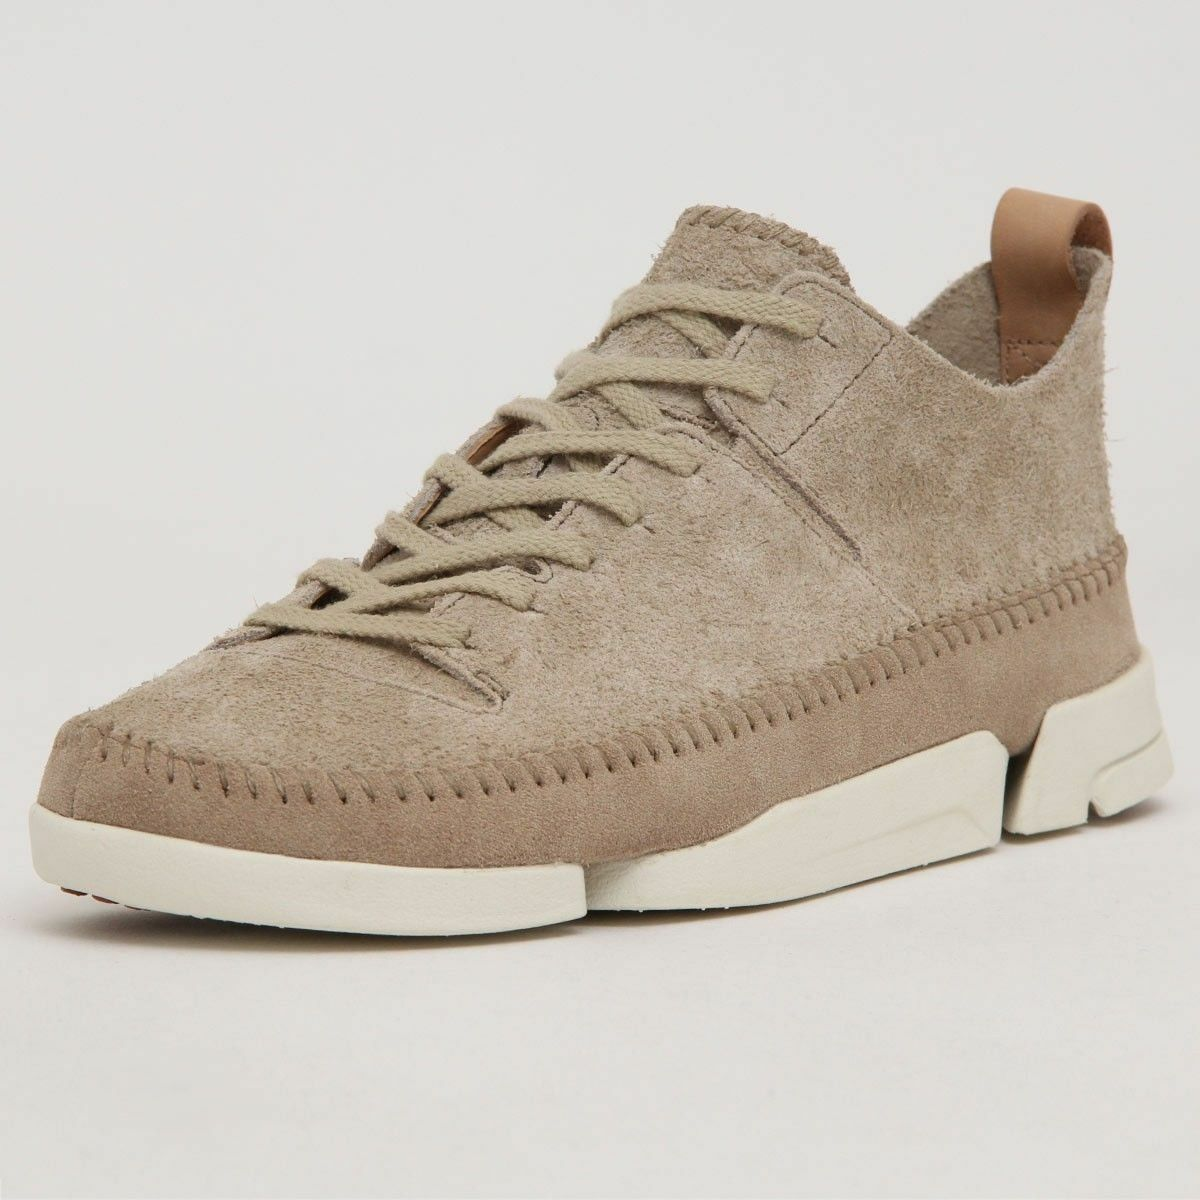 Clarks Originale in Uomo ** WALLABEES Trigenic Flex, sabbia in Originale pelle scamosciata, G 7caef8